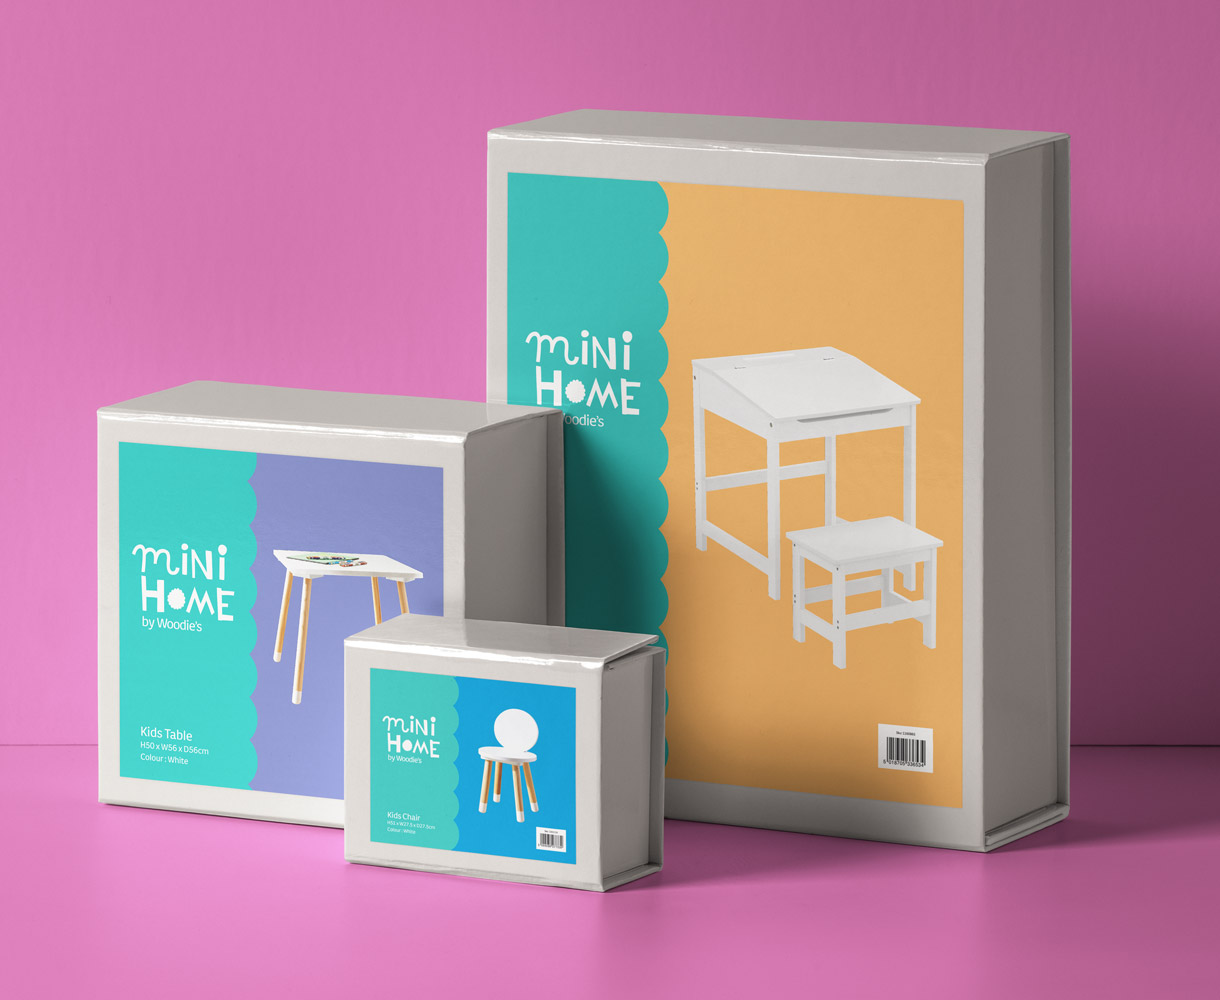 Principle Brand Design Dublin, Mini Home by Woodie's, Furniture Packaging, Children's Homeware Range Branding